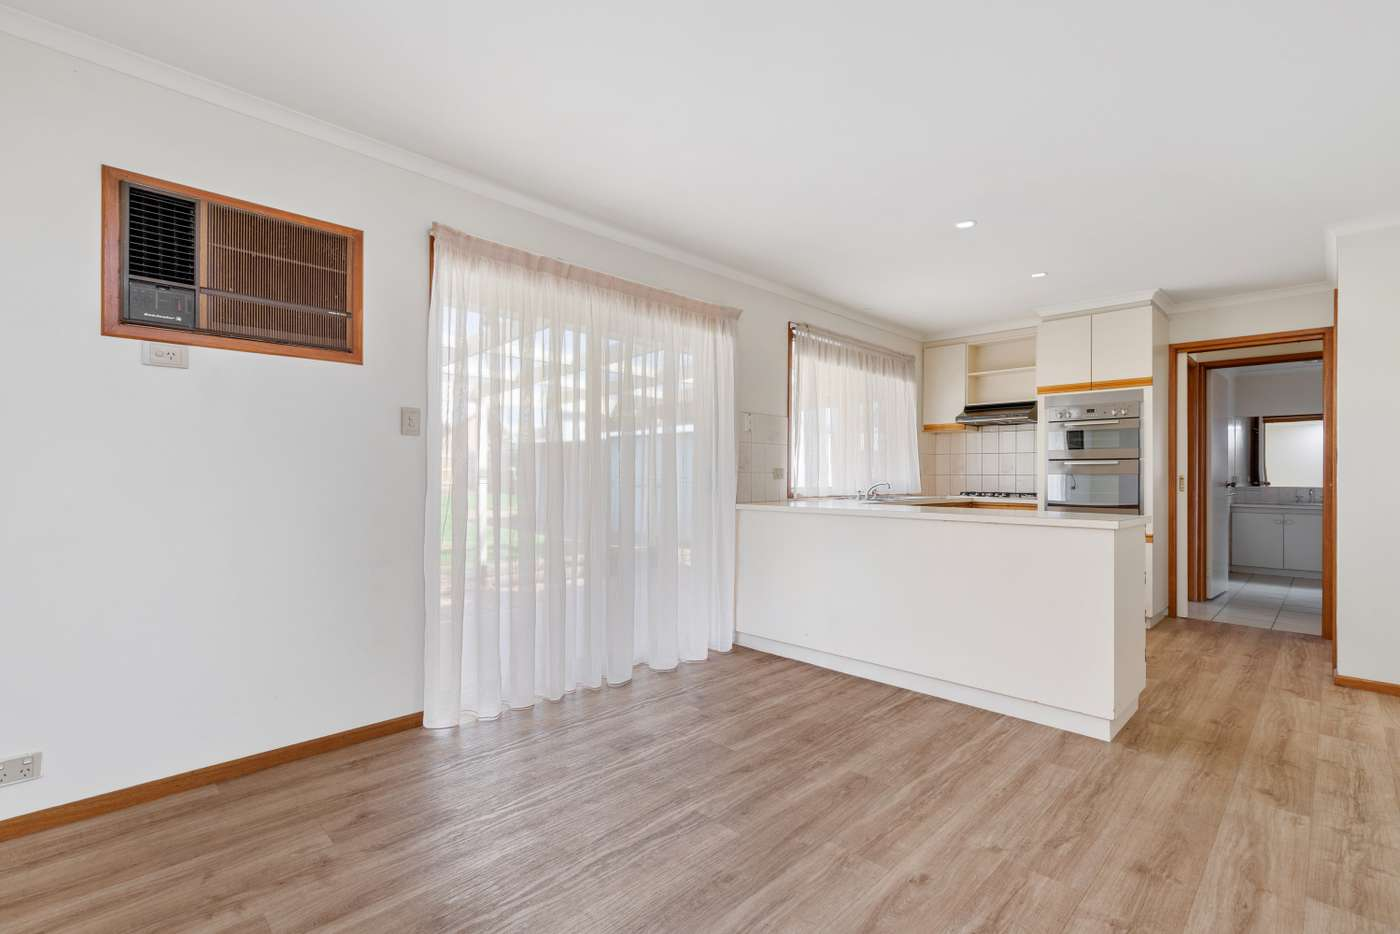 Fifth view of Homely house listing, 31 Clifton Drive, Bacchus Marsh VIC 3340